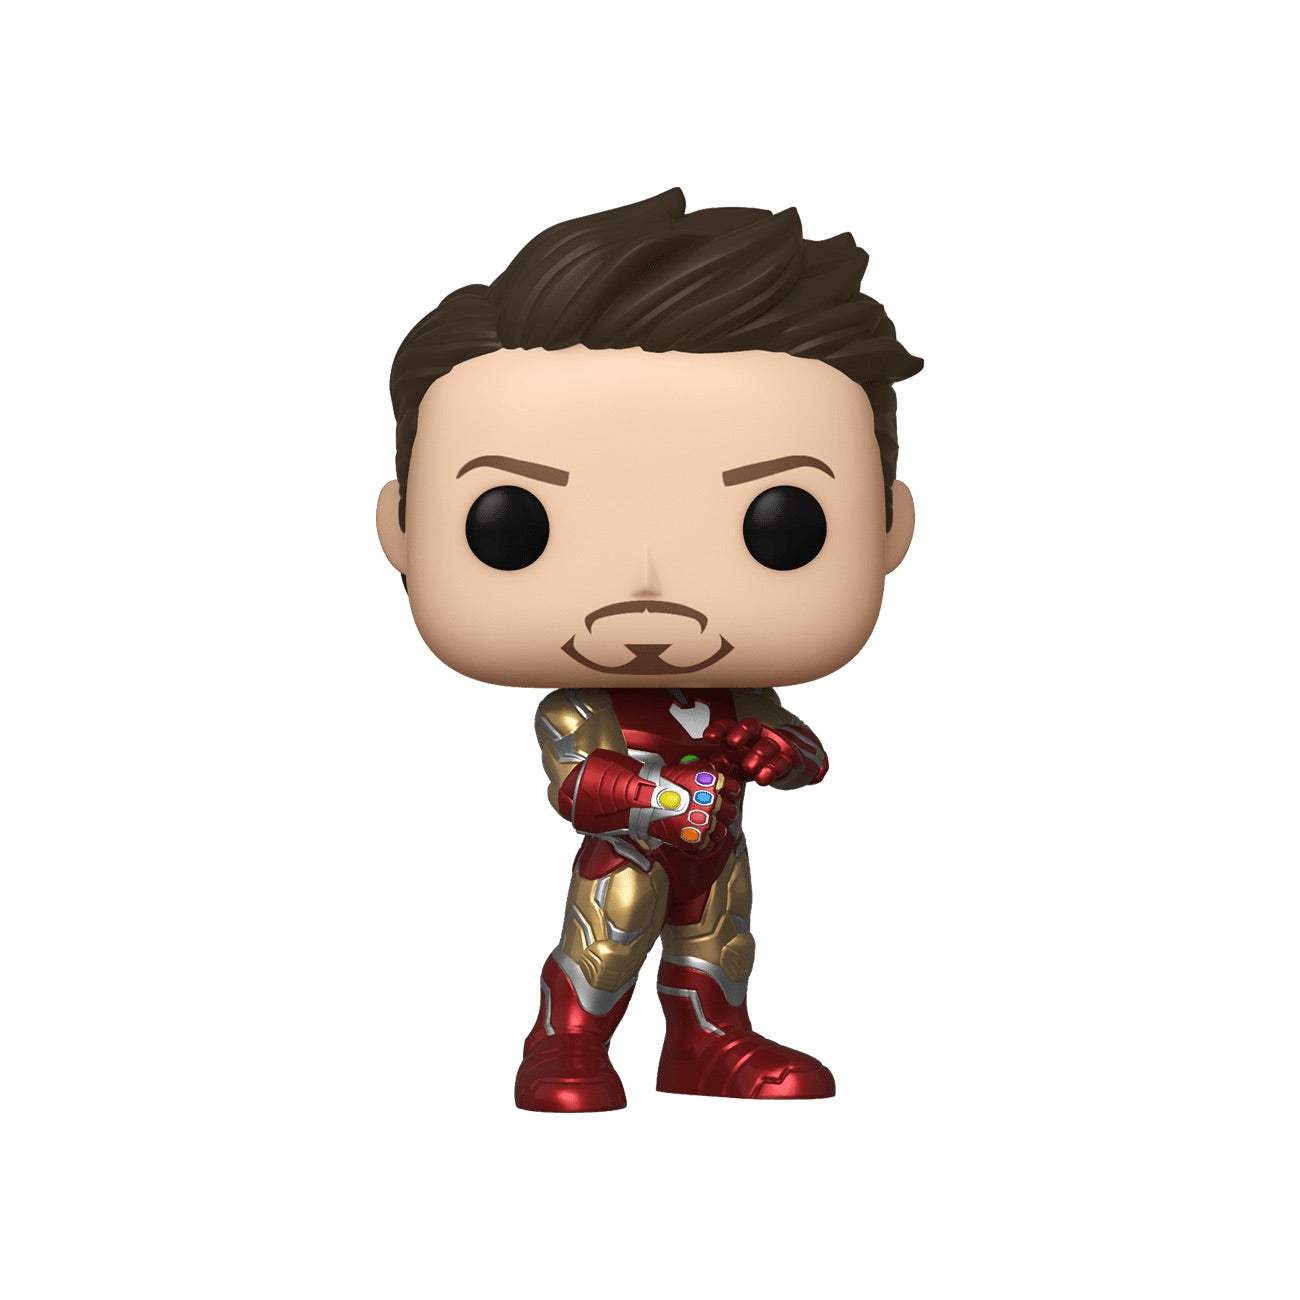 Marvel Avengers Endgame Iron Man (Tony Stark) with Gauntlet Fall Convention Exclusive